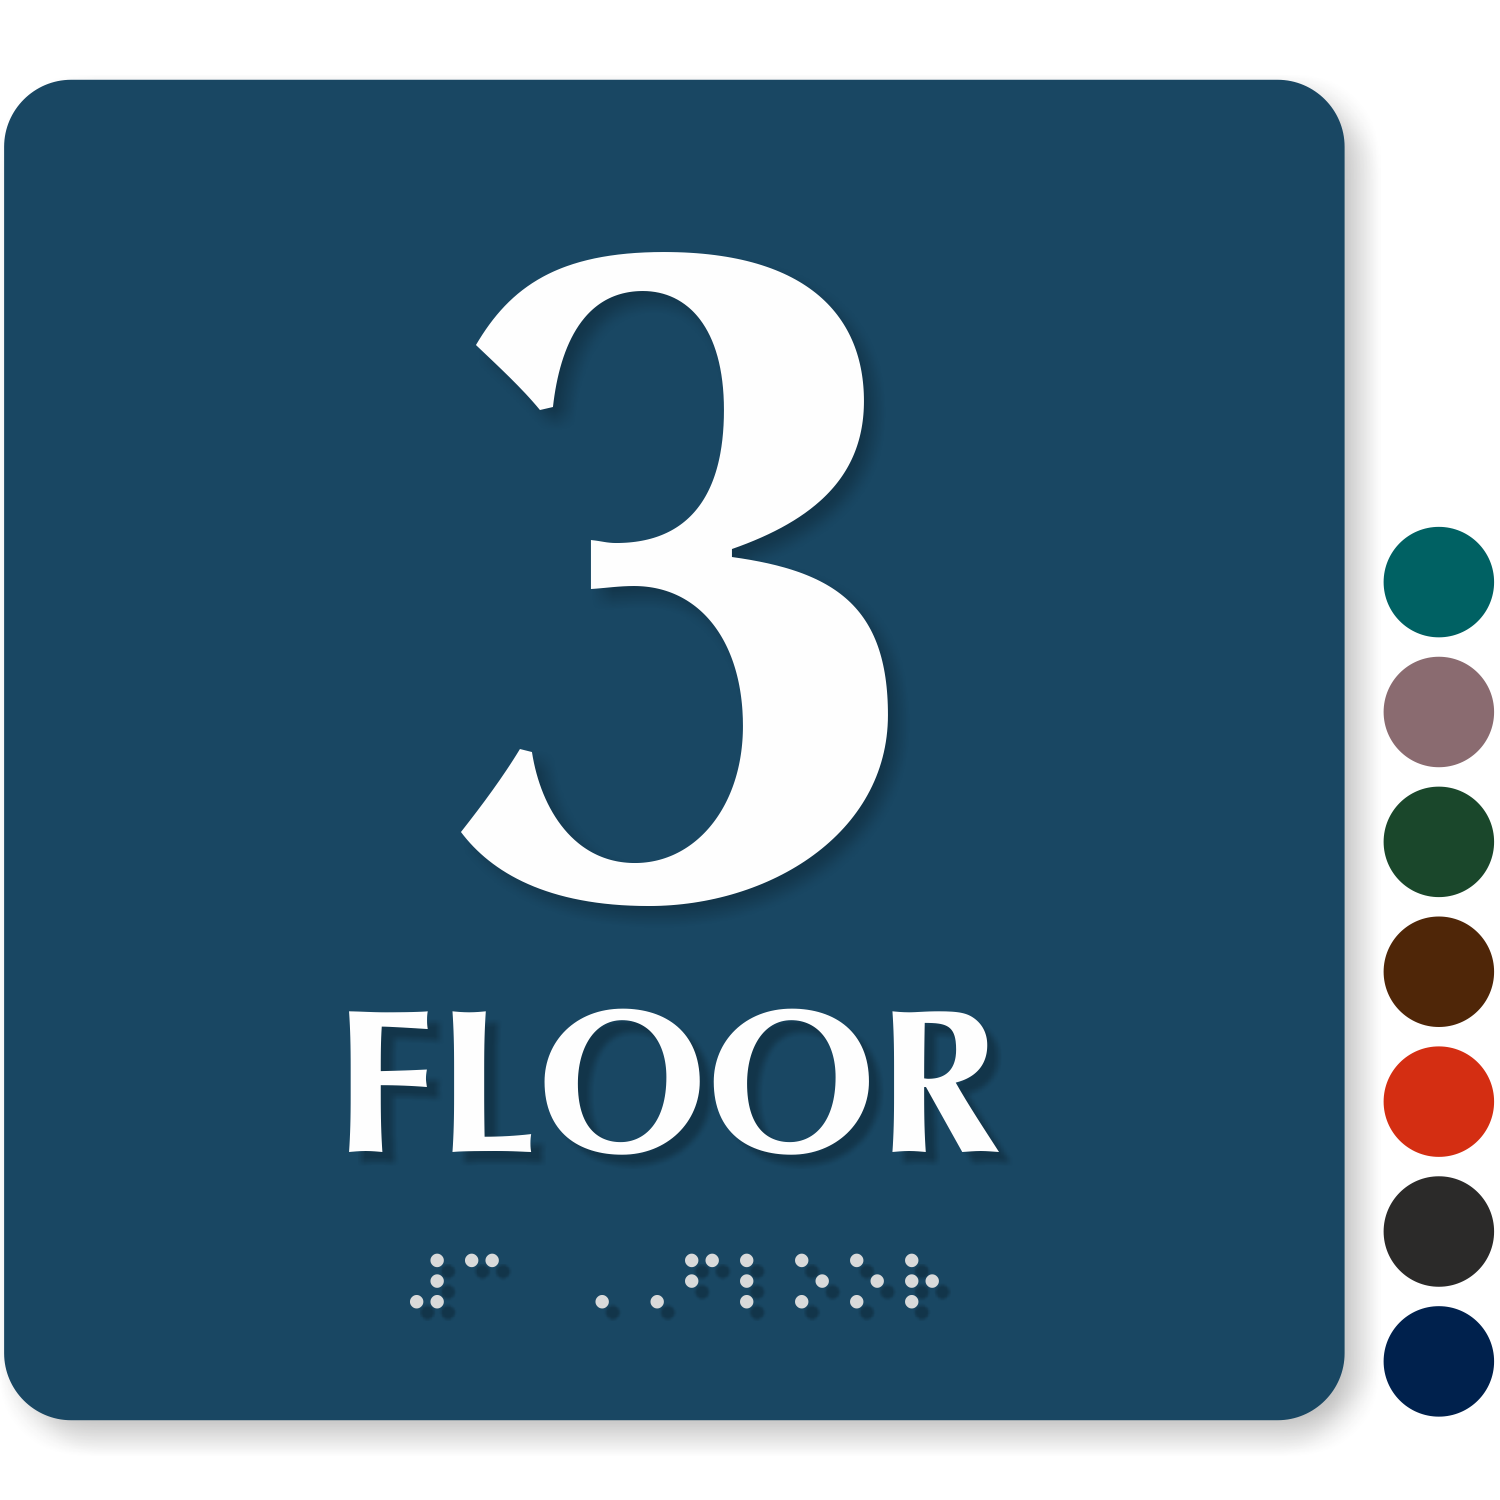 Floor number signs roof access re entry floor number for Floor number sign